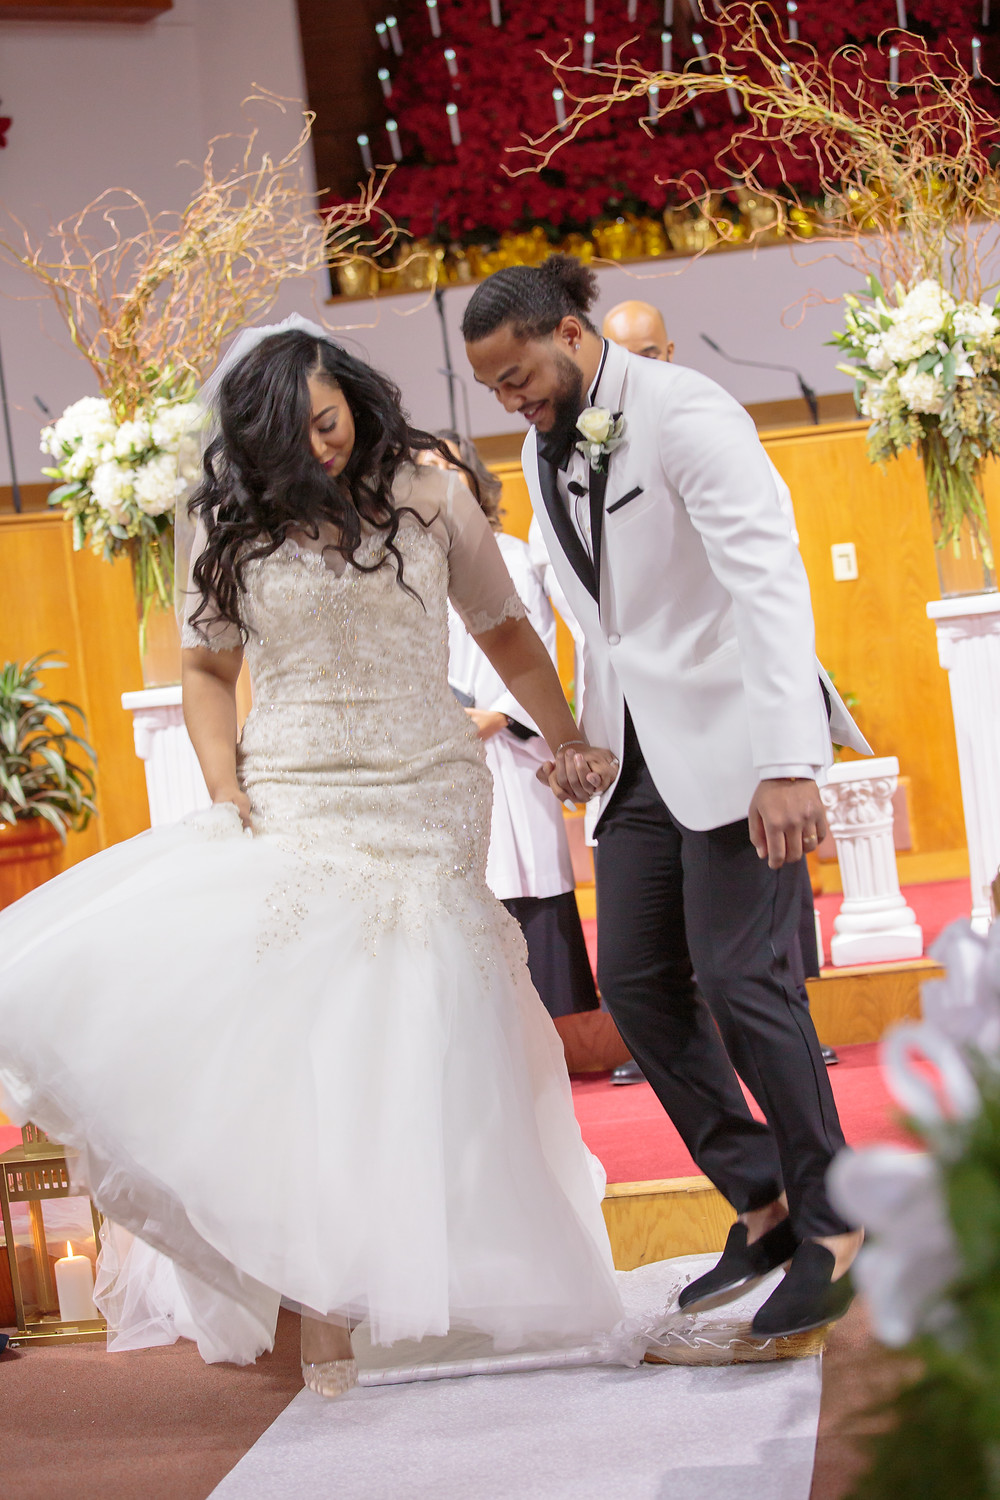 The bride and groom traditionally jump the broom after the wedding ceremony at the Alfred Street Baptist Church.